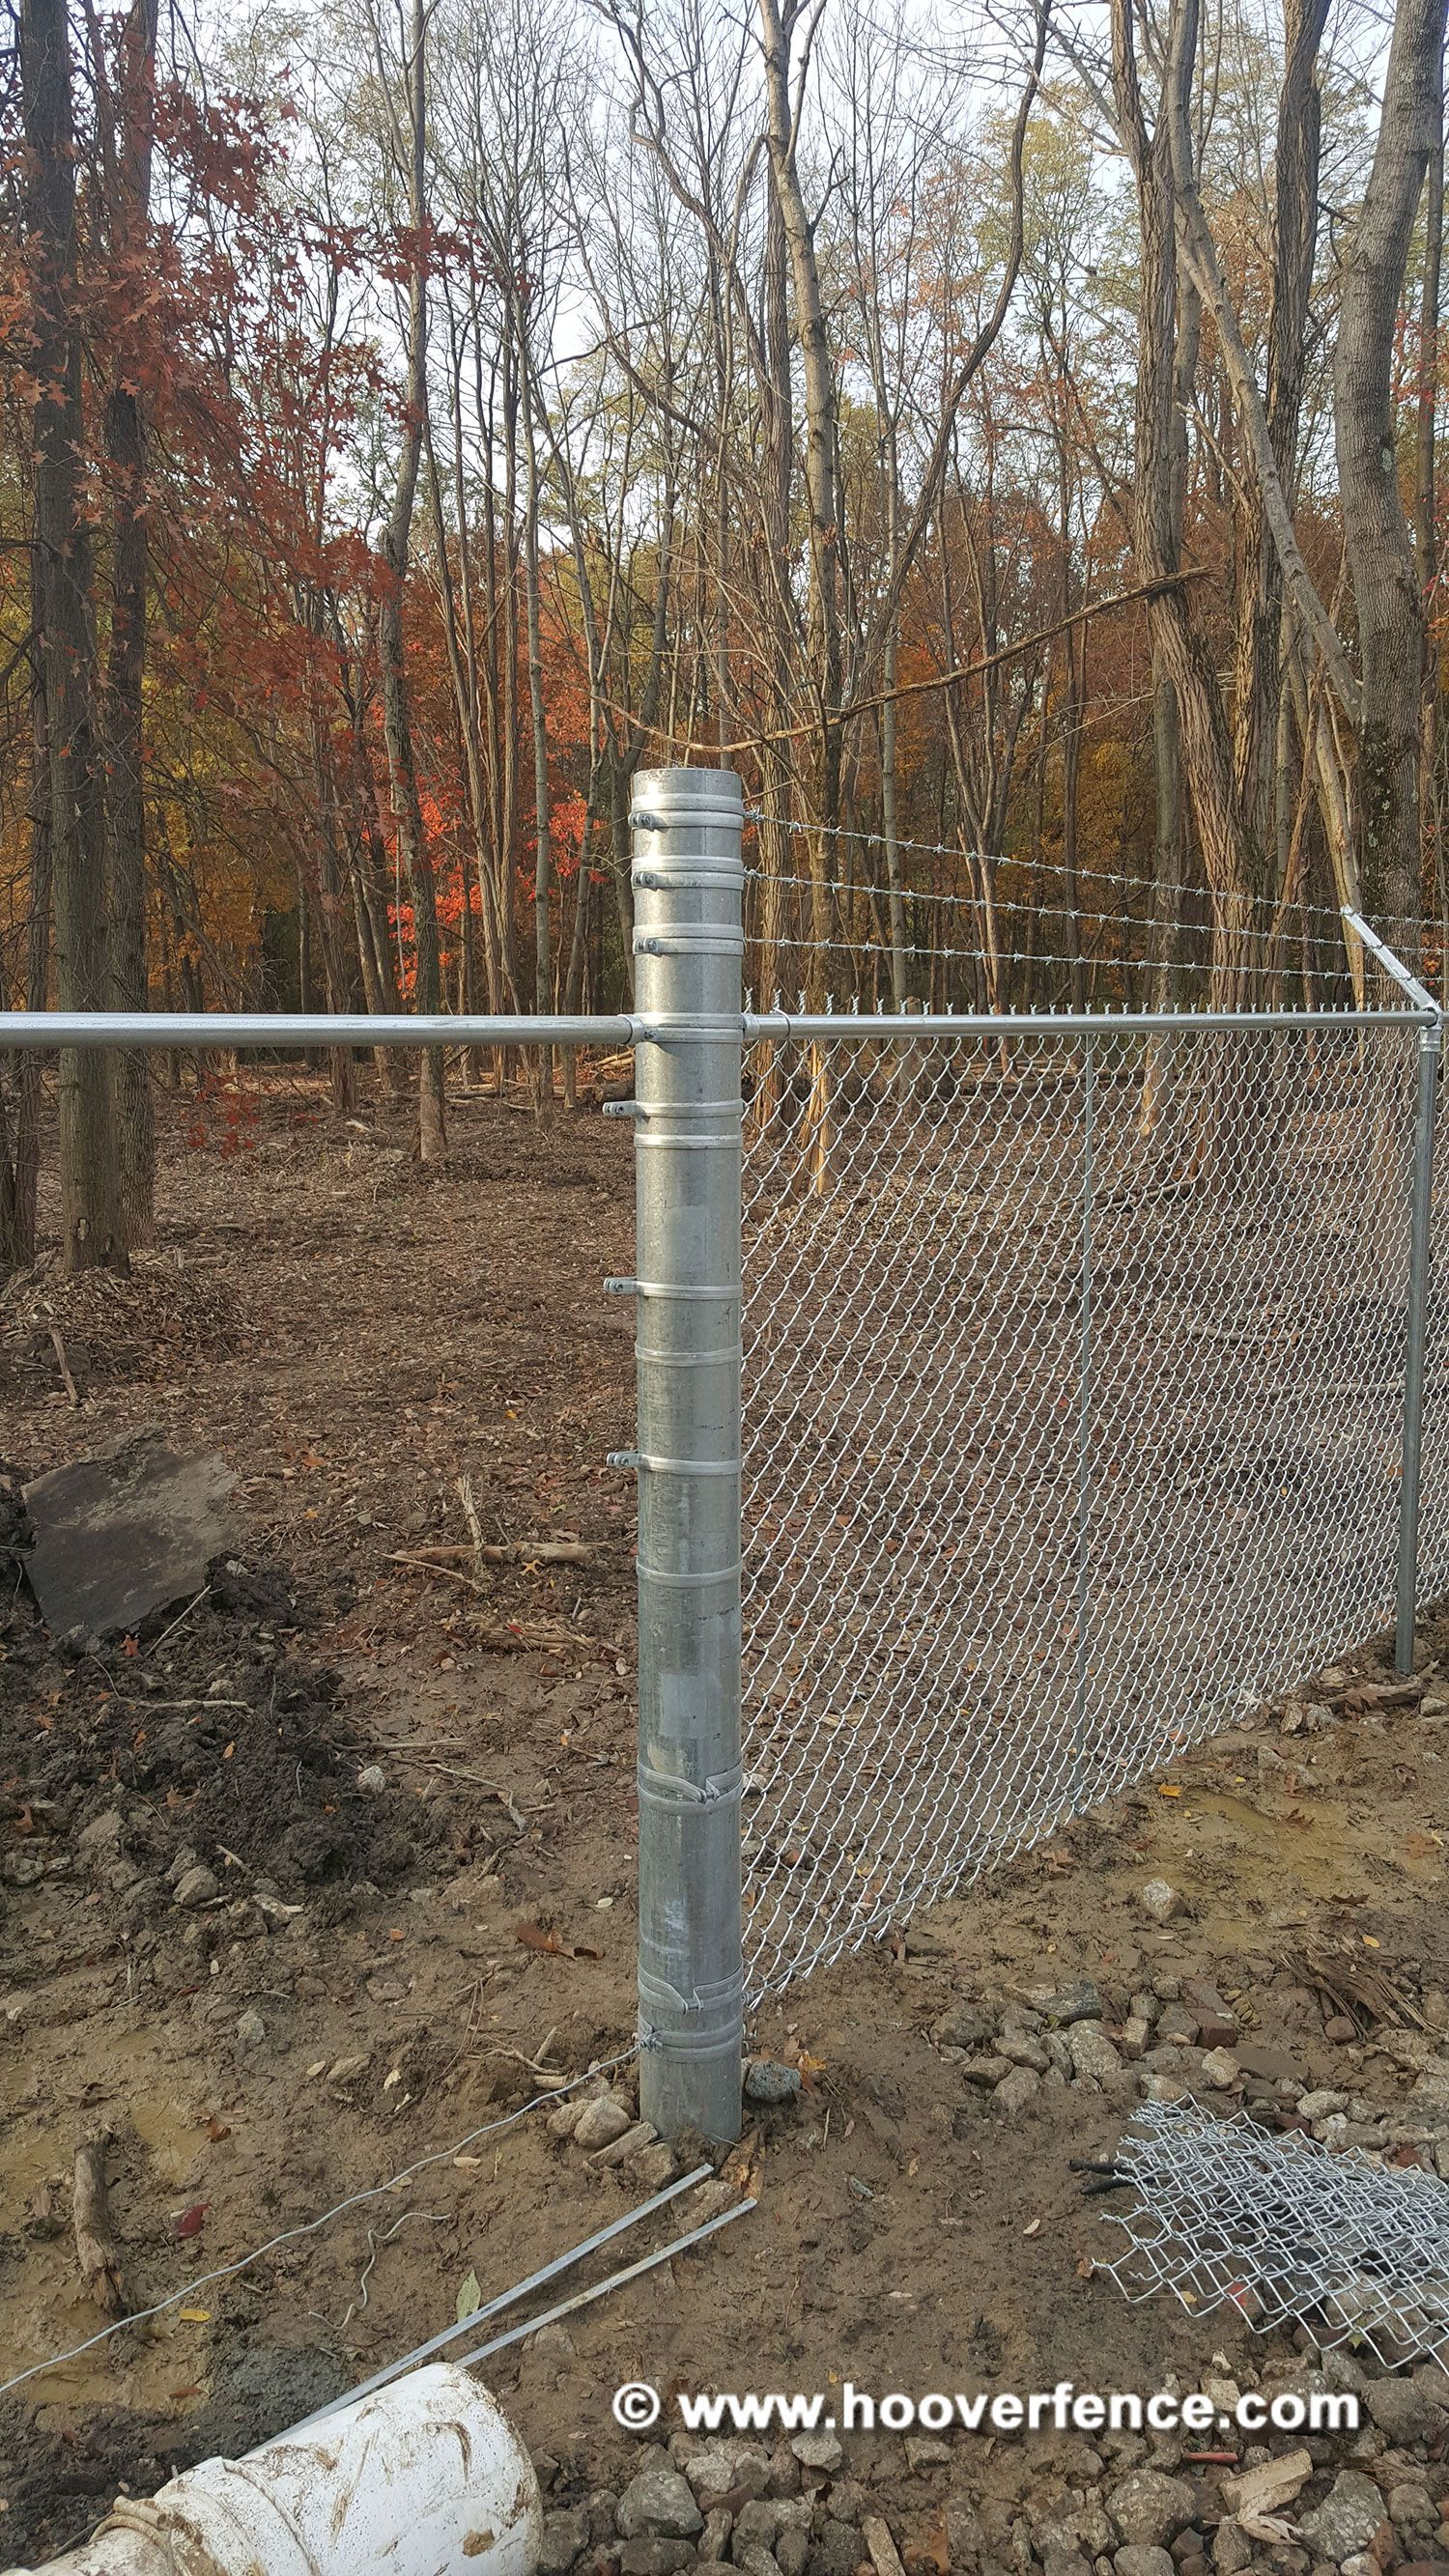 Hf40 Round Chain Link Fence Posts And Pipes Galvanized Hoover Fence Co